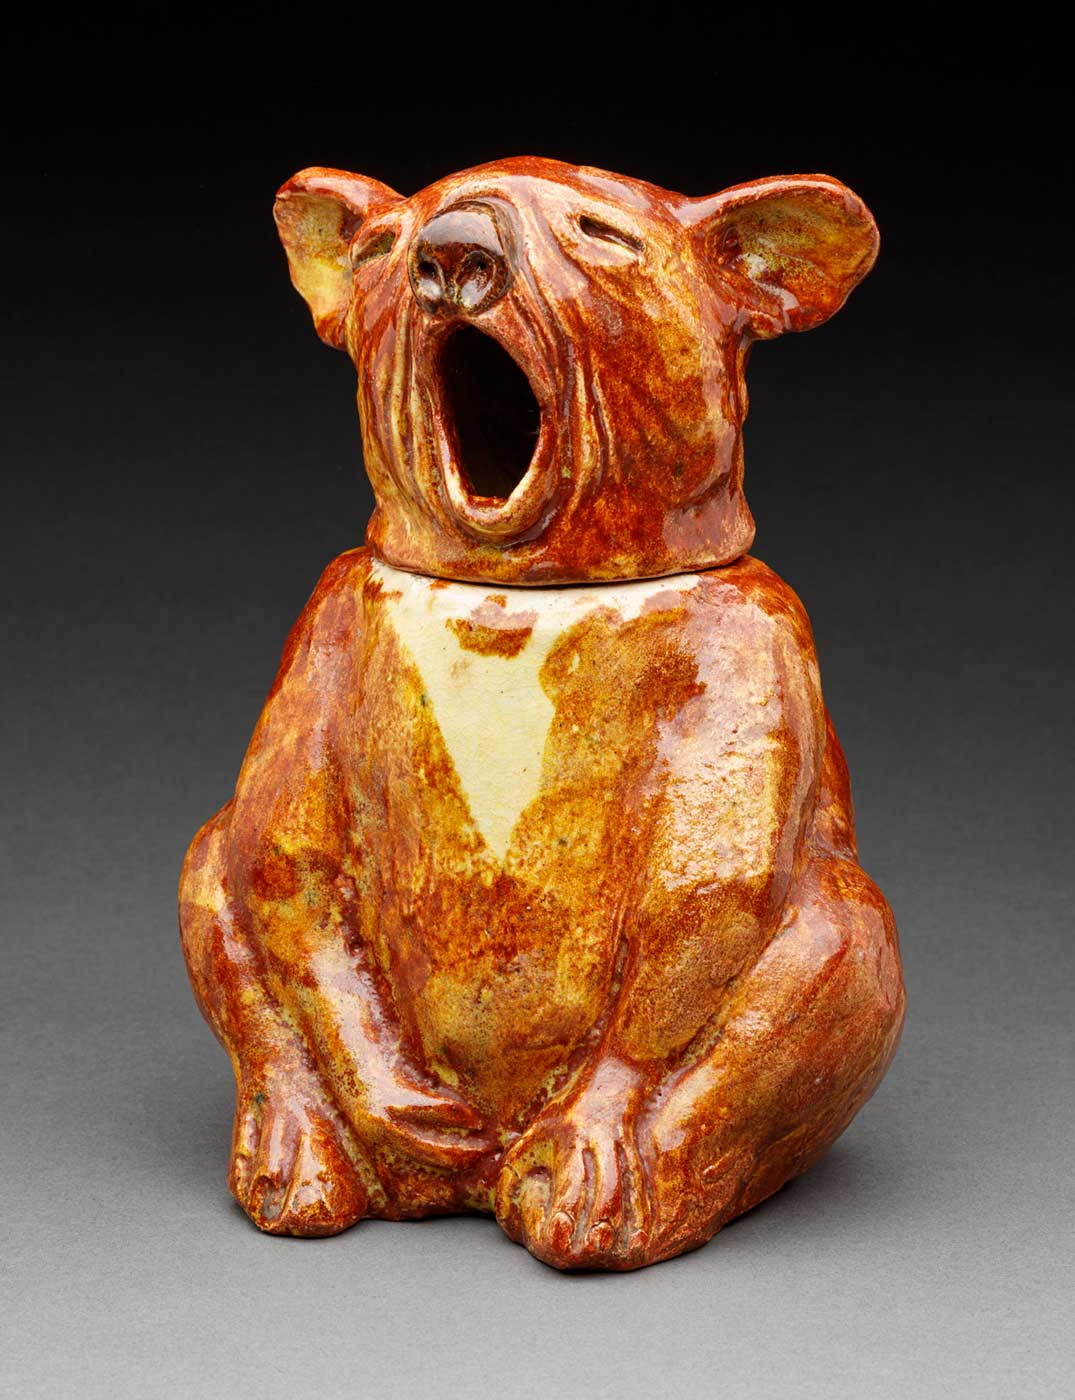 A ceramic biscuit jar in the shape of a yawning koala. It is painted in shades of brown and cream. - click to view larger image